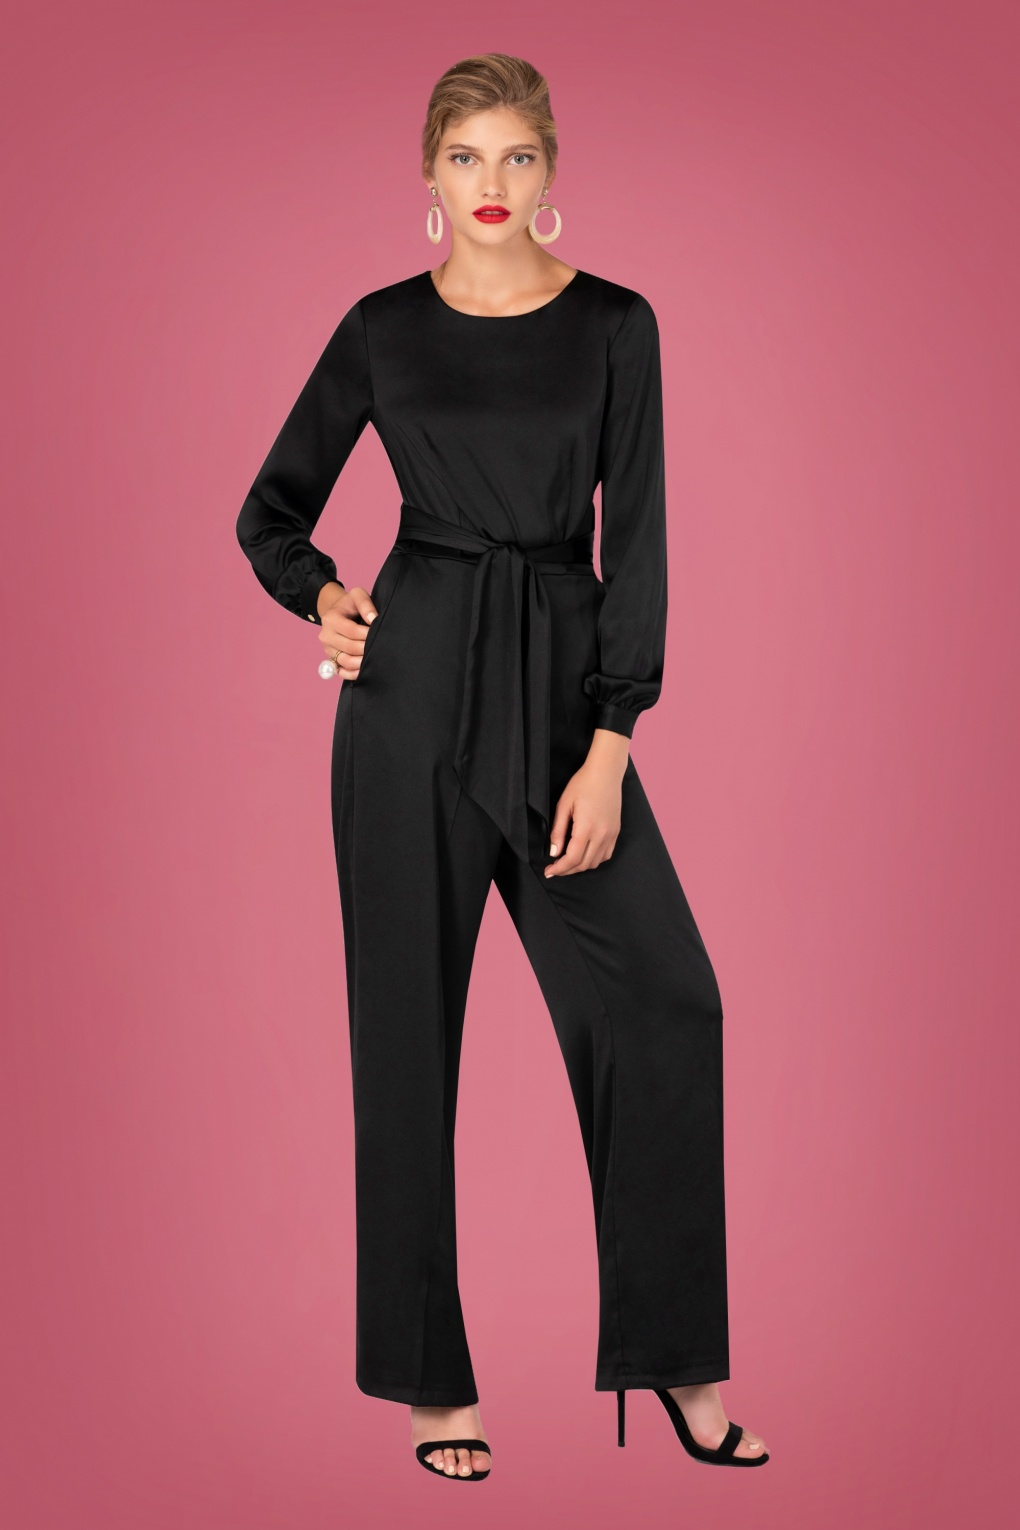 Vintage Overalls 1910s -1950s Pictures and History 70s Satin Puff Sleeve Jumpsuit in Black £114.57 AT vintagedancer.com